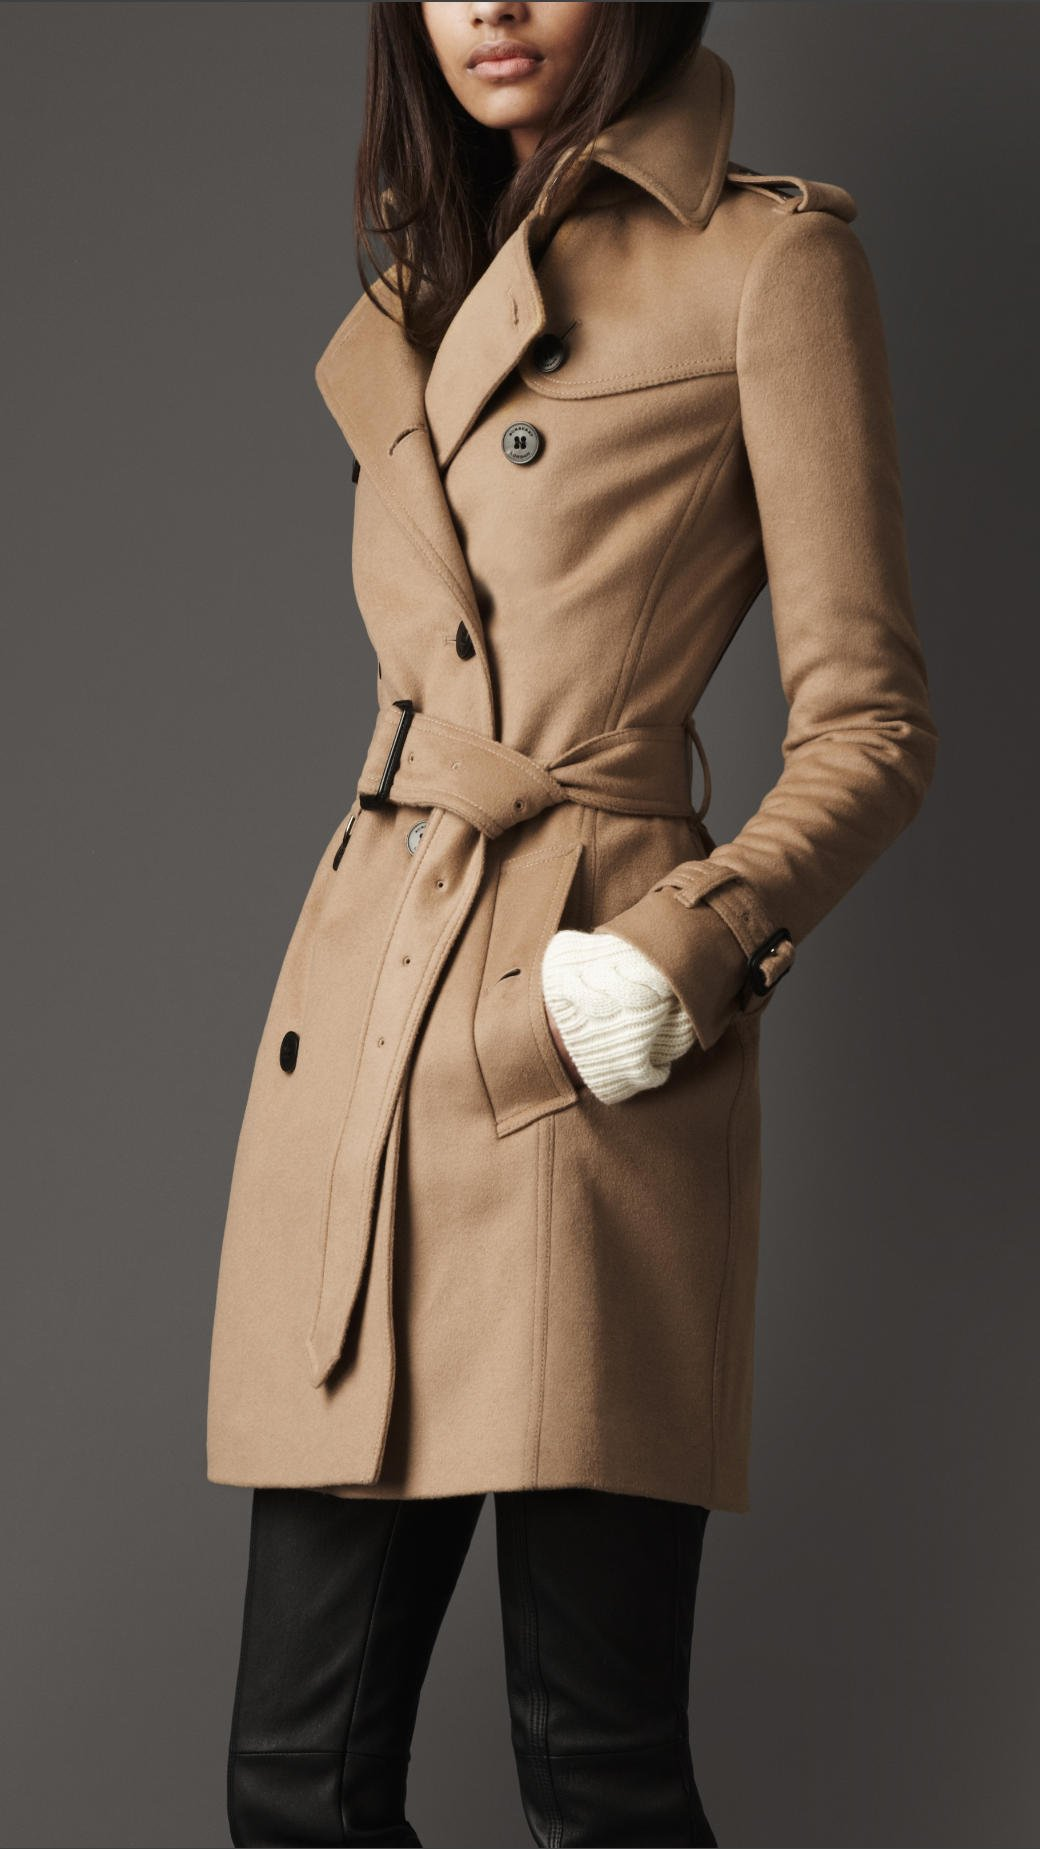 Burberry Midlength Wool Cashmere Trench Coat in Natural | Lyst